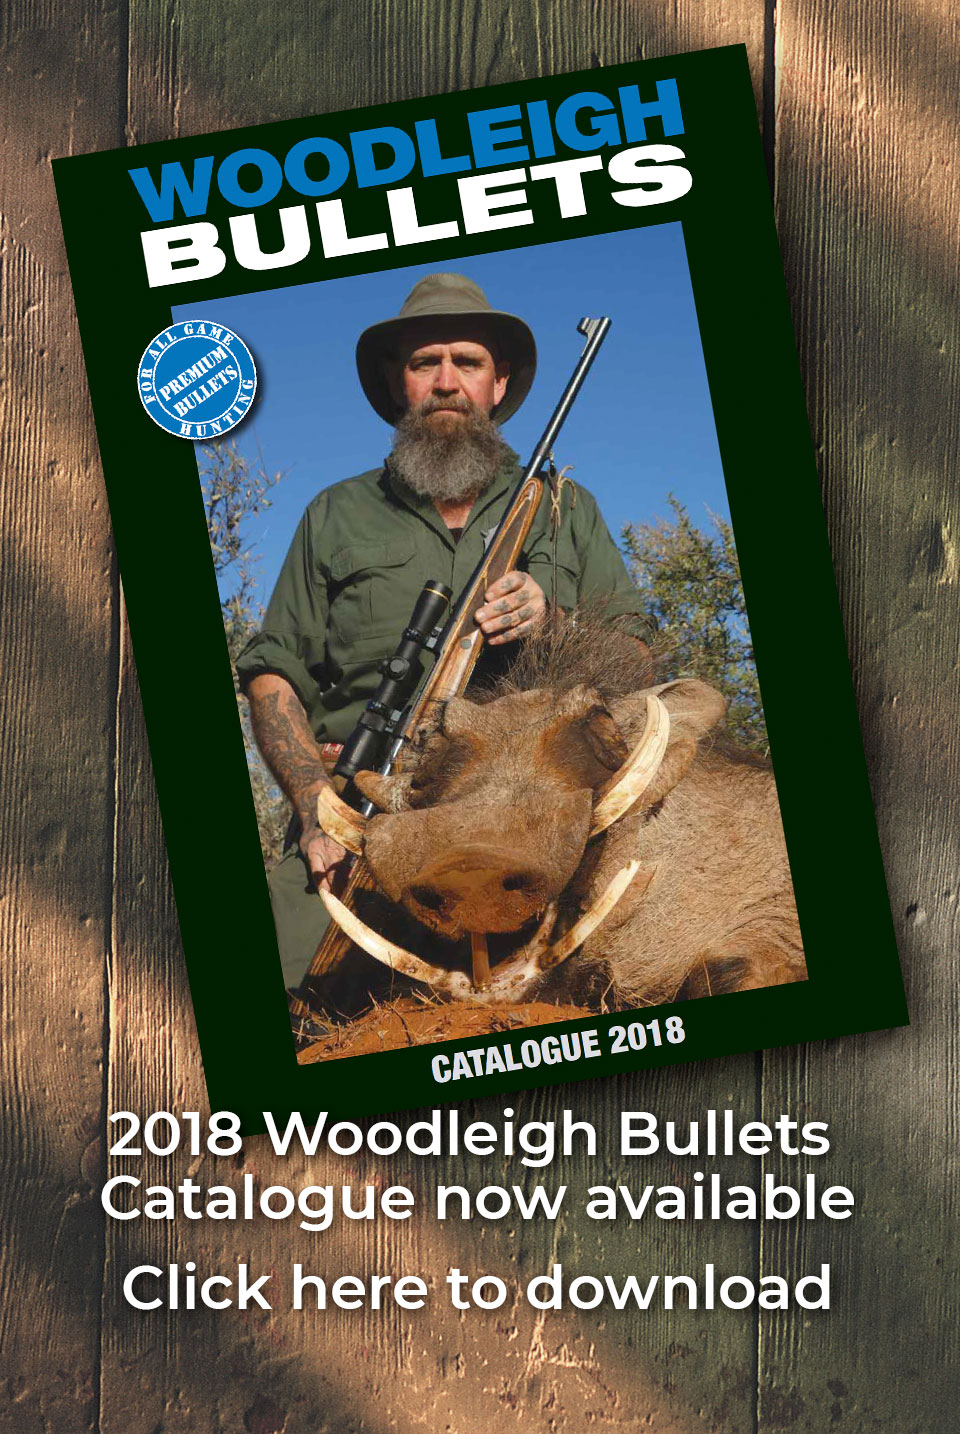 Woodleigh Bullets 2018 Catalogue